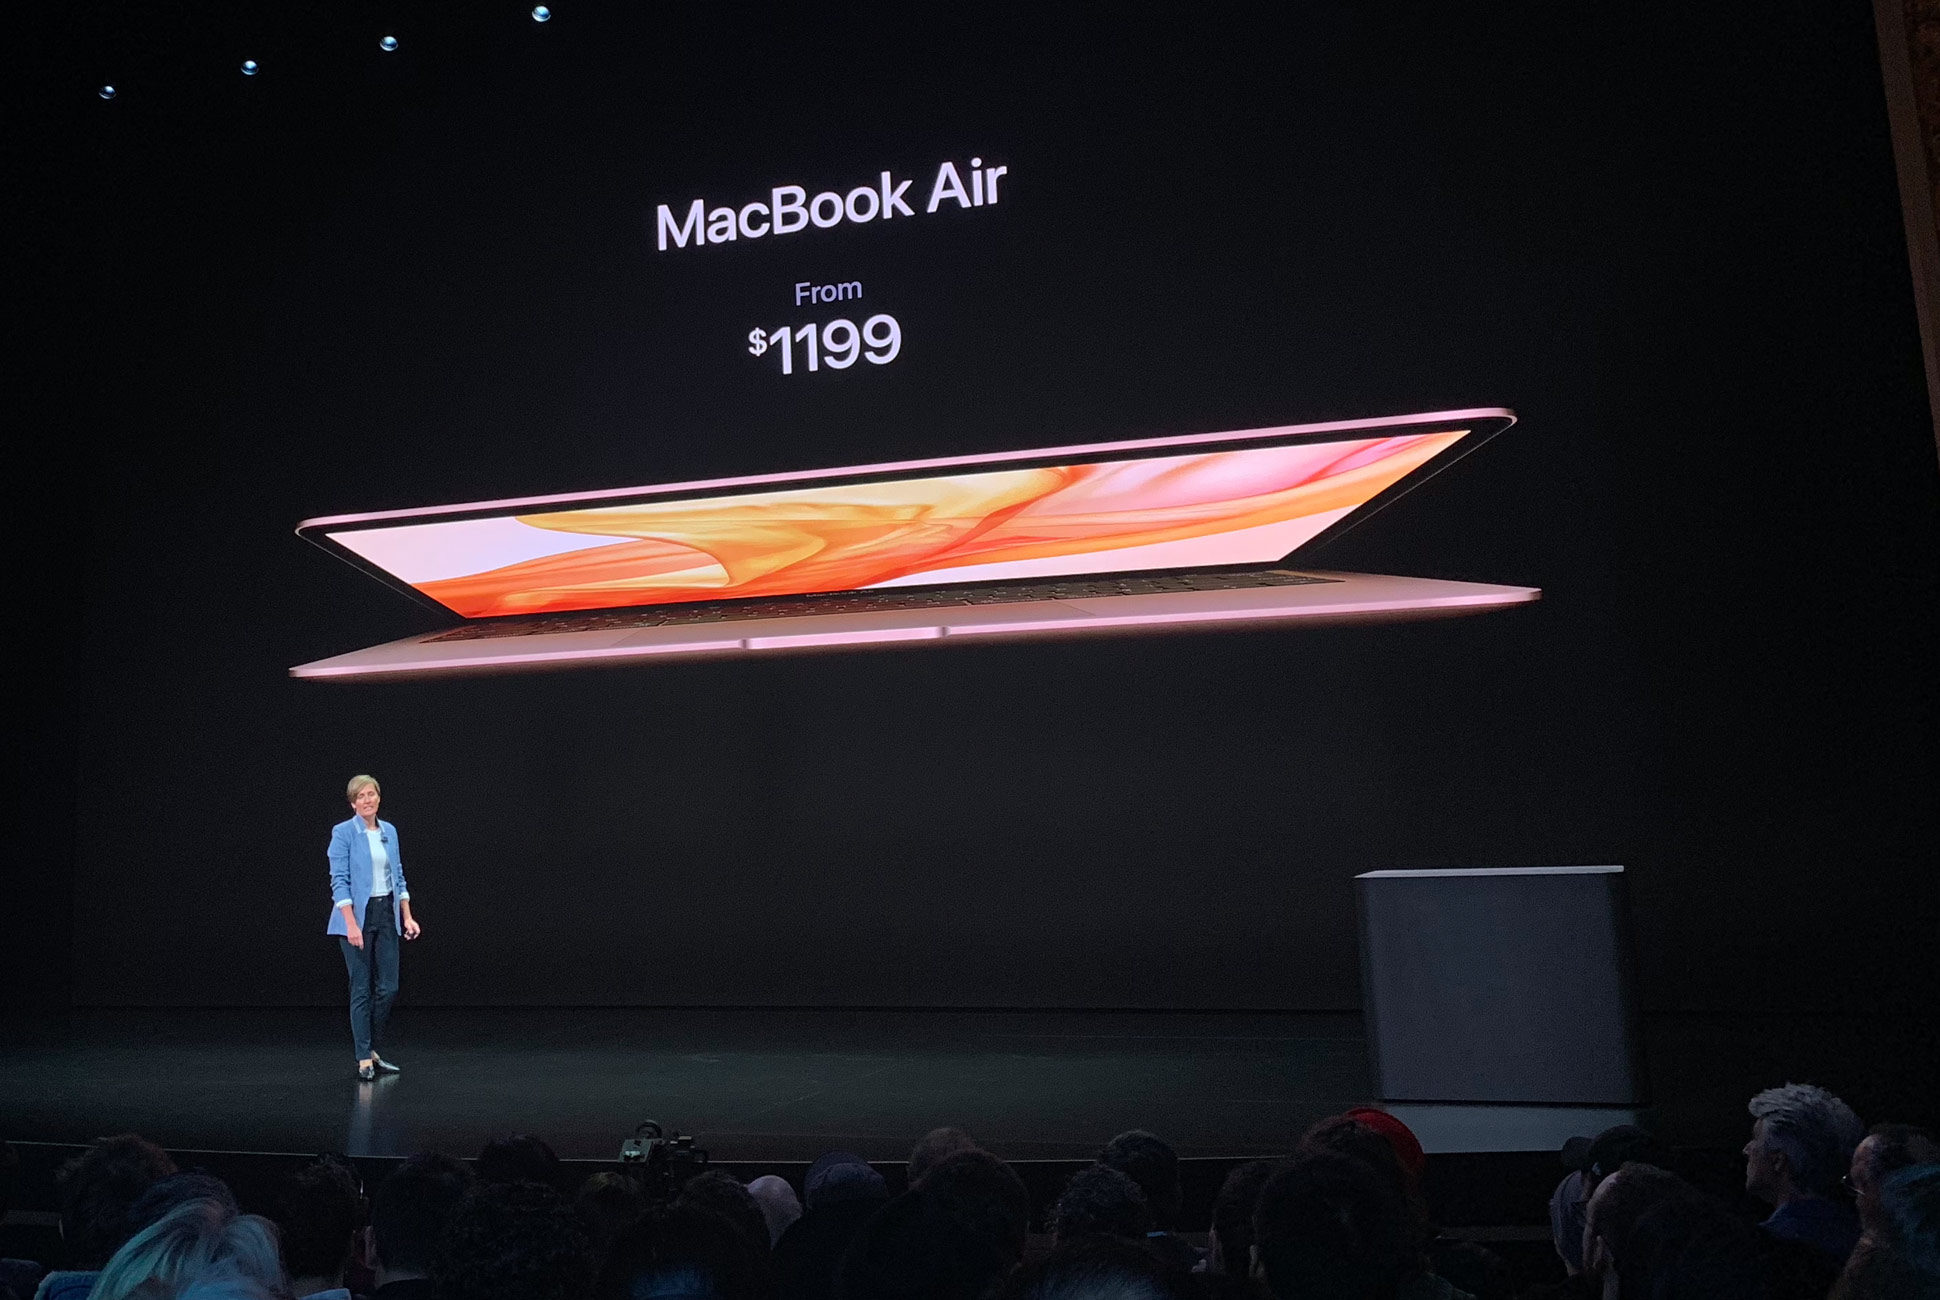 yeni-macbook-air-hakkinda-her-sey-10